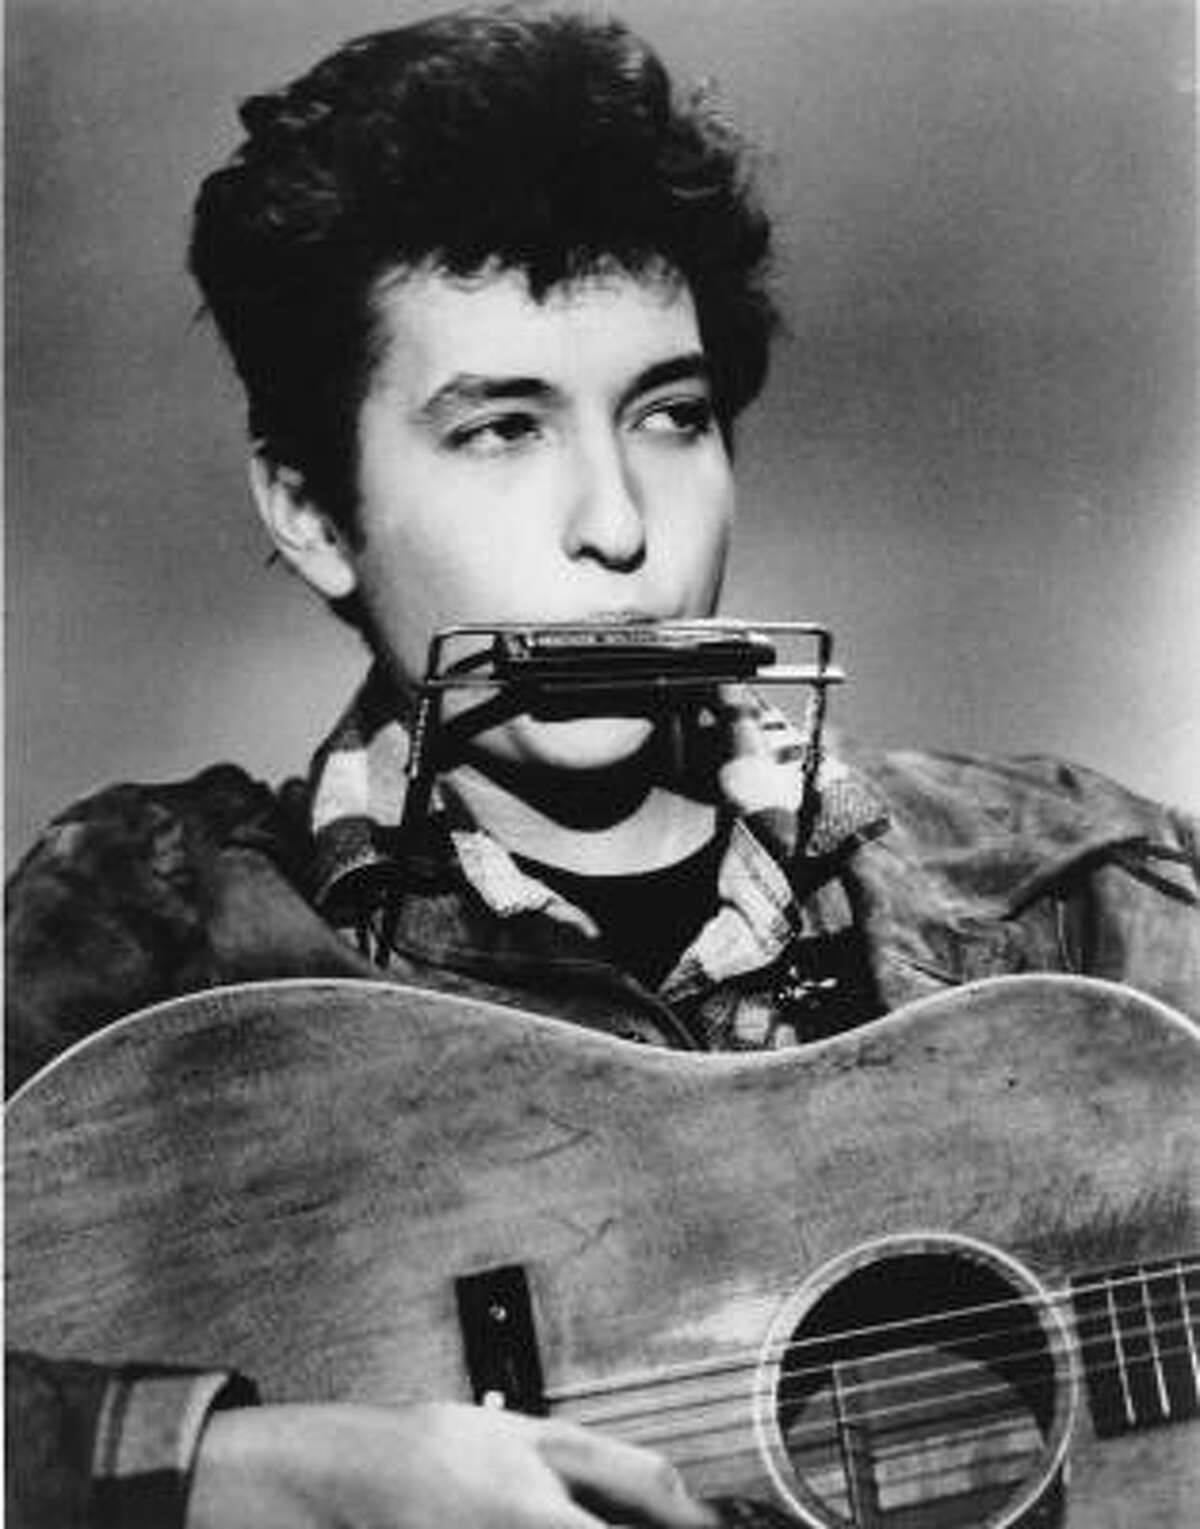 The answer, it turns out, is blowing into a harmonica. Dylan the young folkie in 1963.